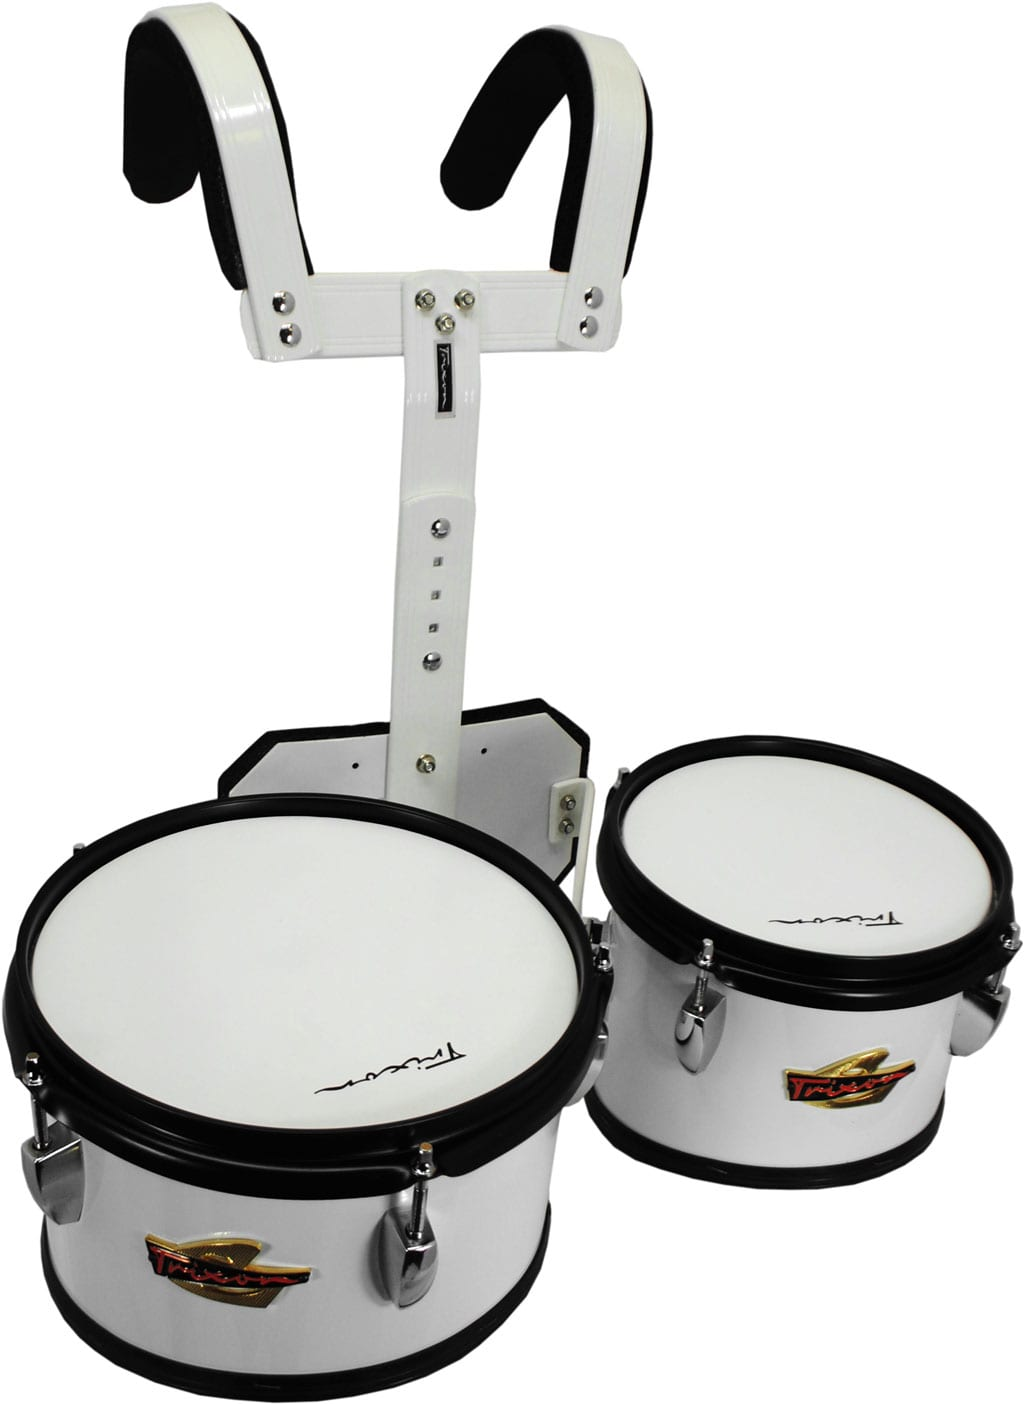 field series ii marching toms   trixon acoustic drum sets cocktail drum kits